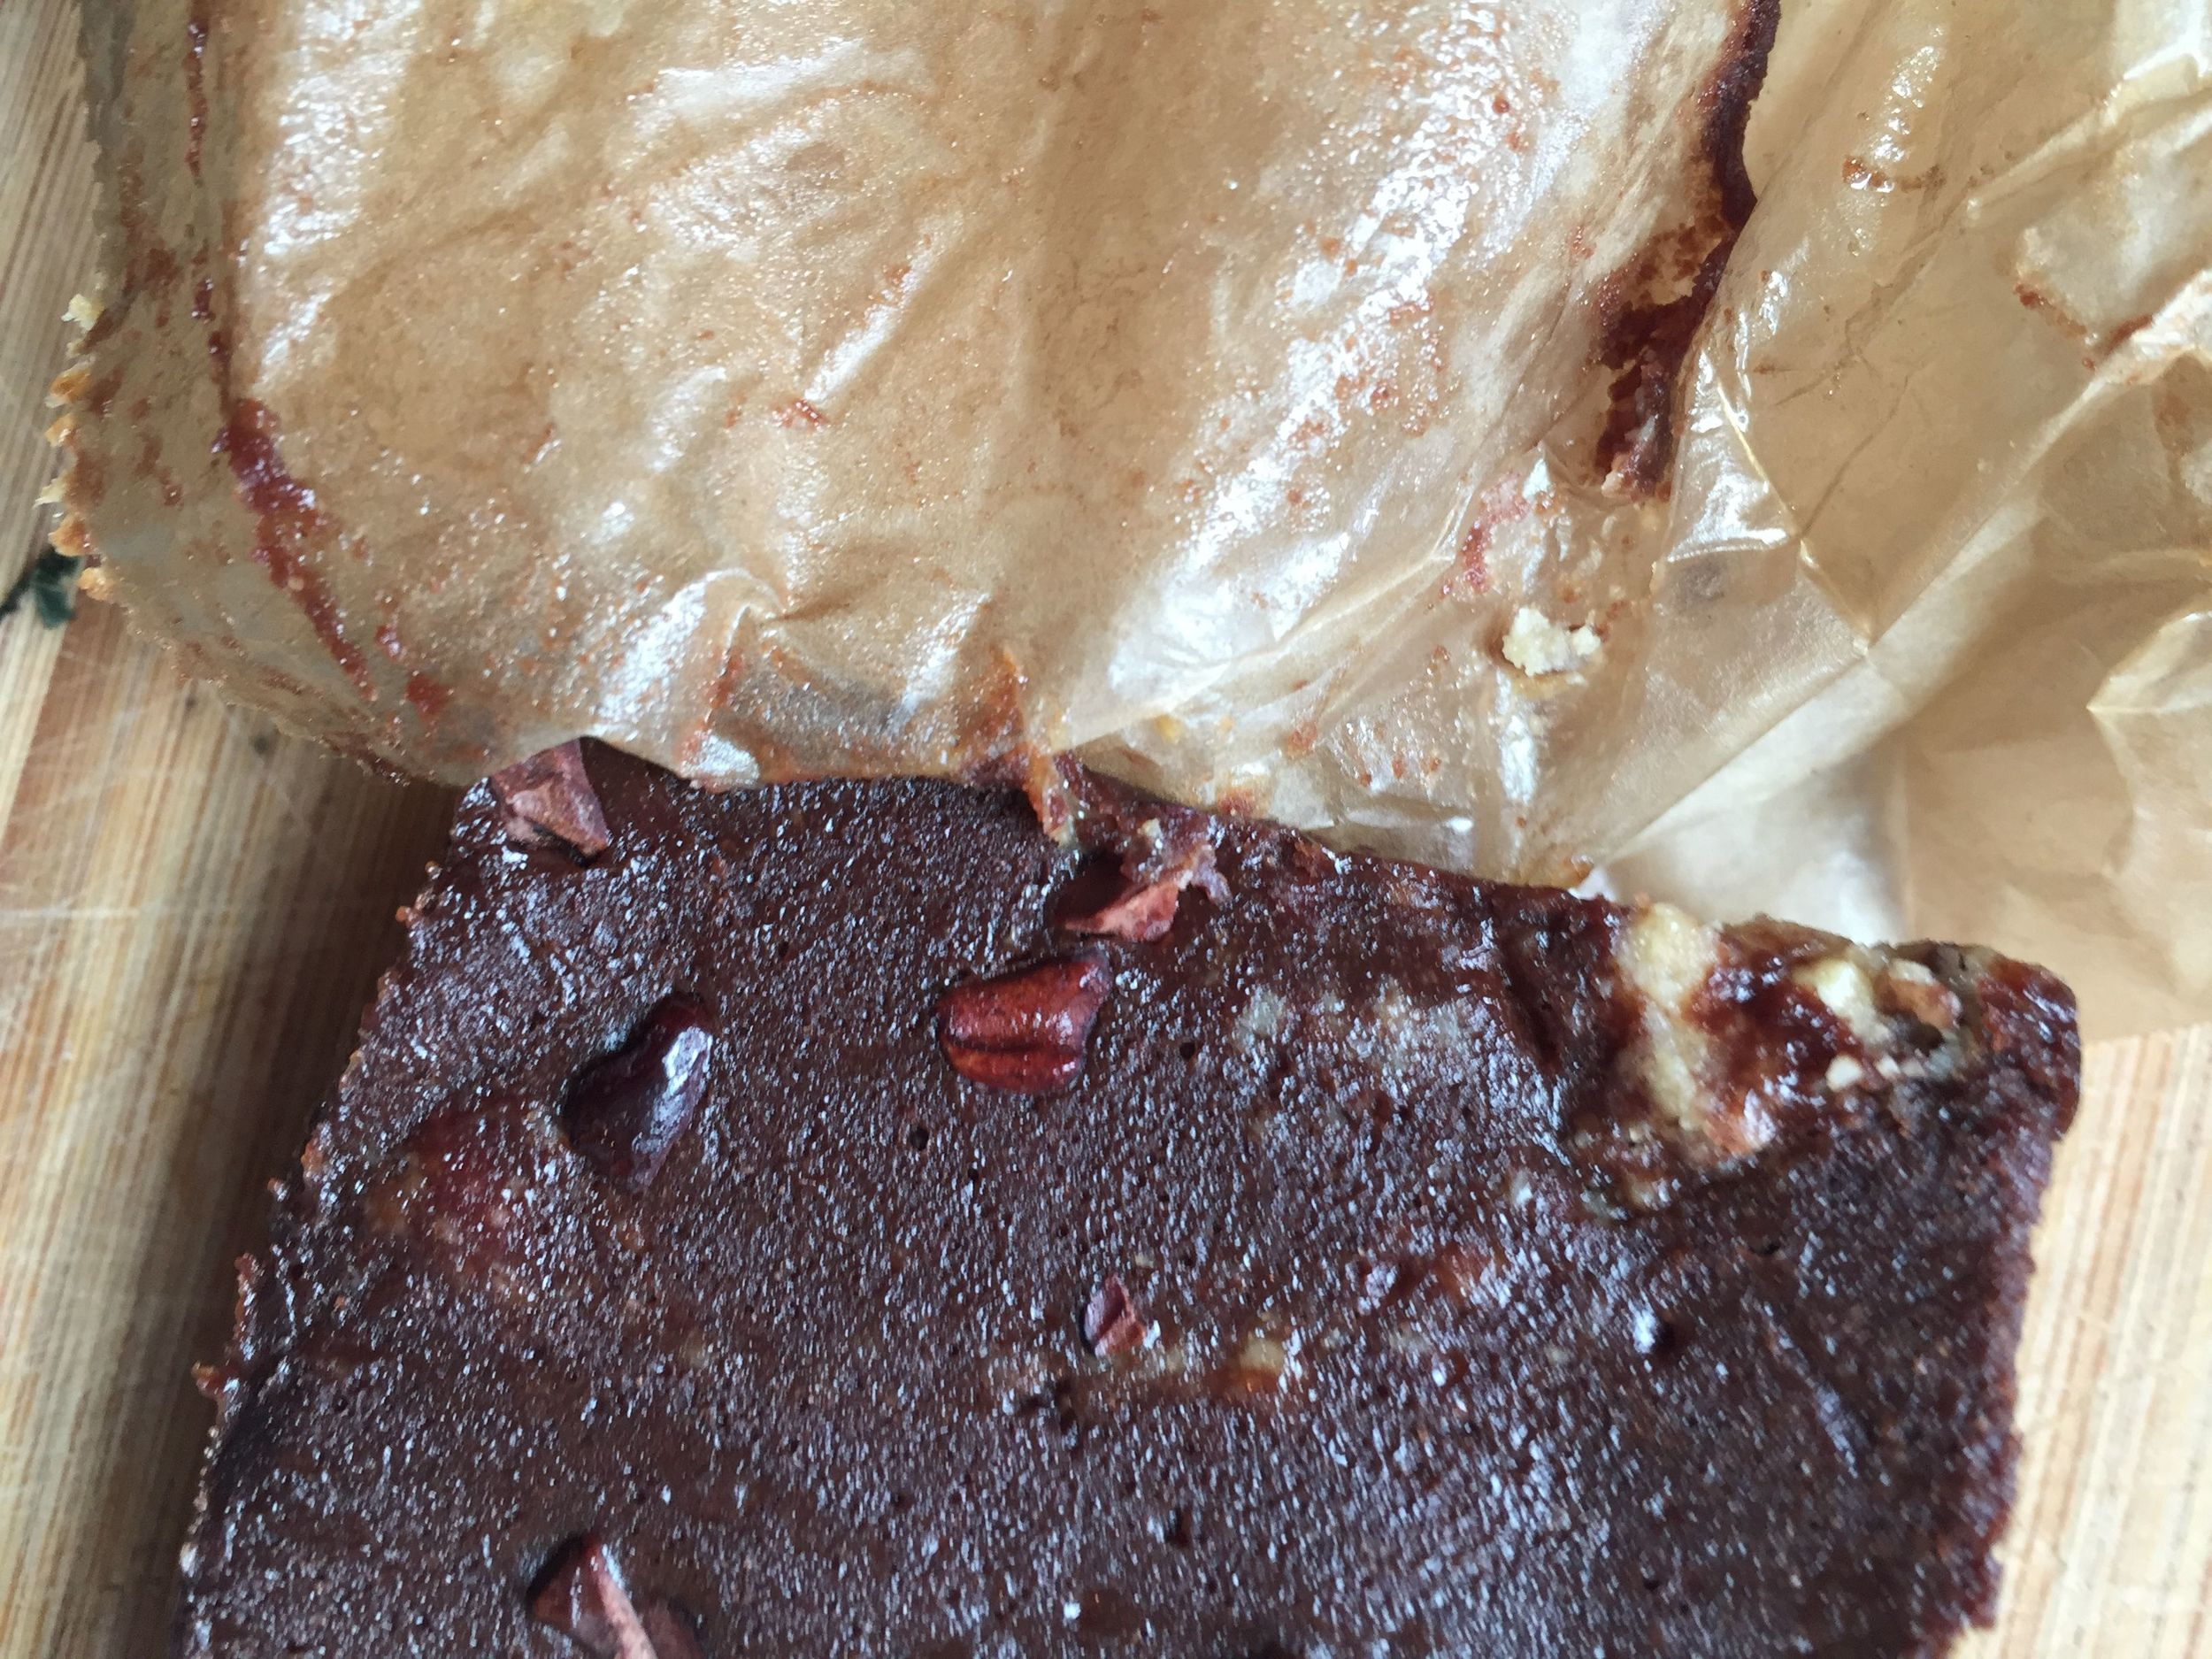 Son of a Brownie: Peanut Butter, Honey and Salted Caramel